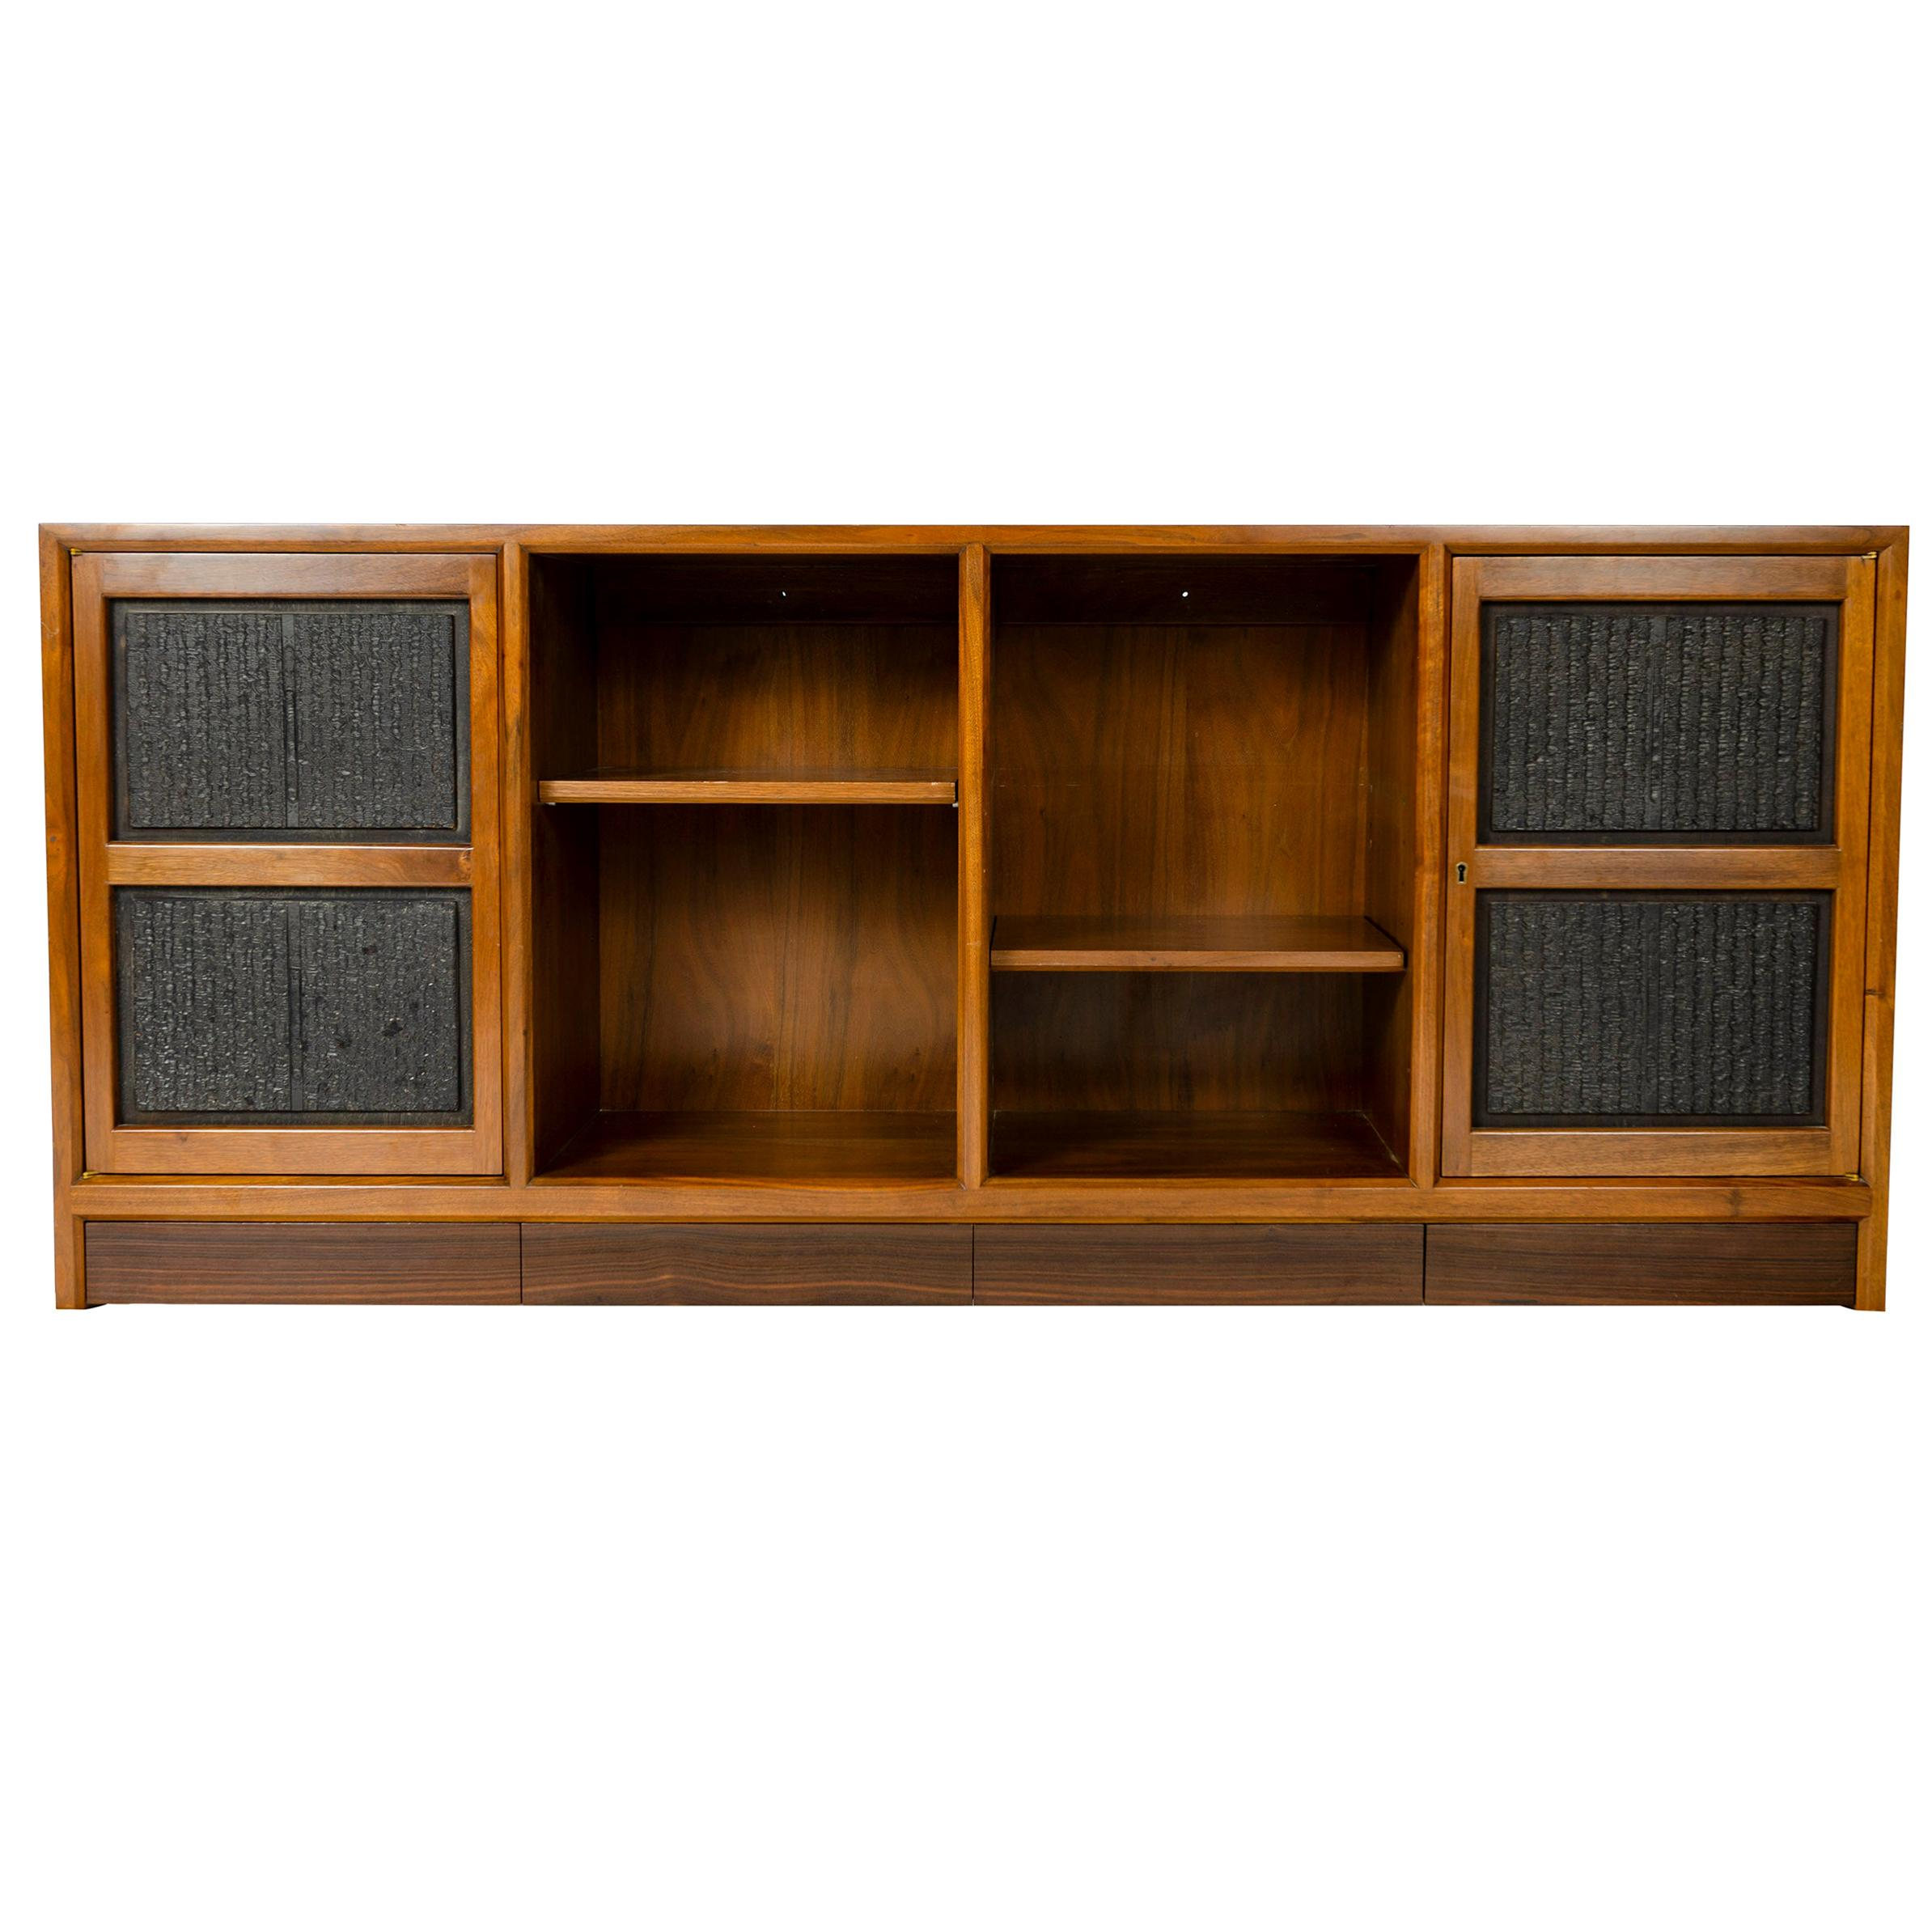 1950s Wall Mounted Cabinet by Edward Wormley for Dunbar